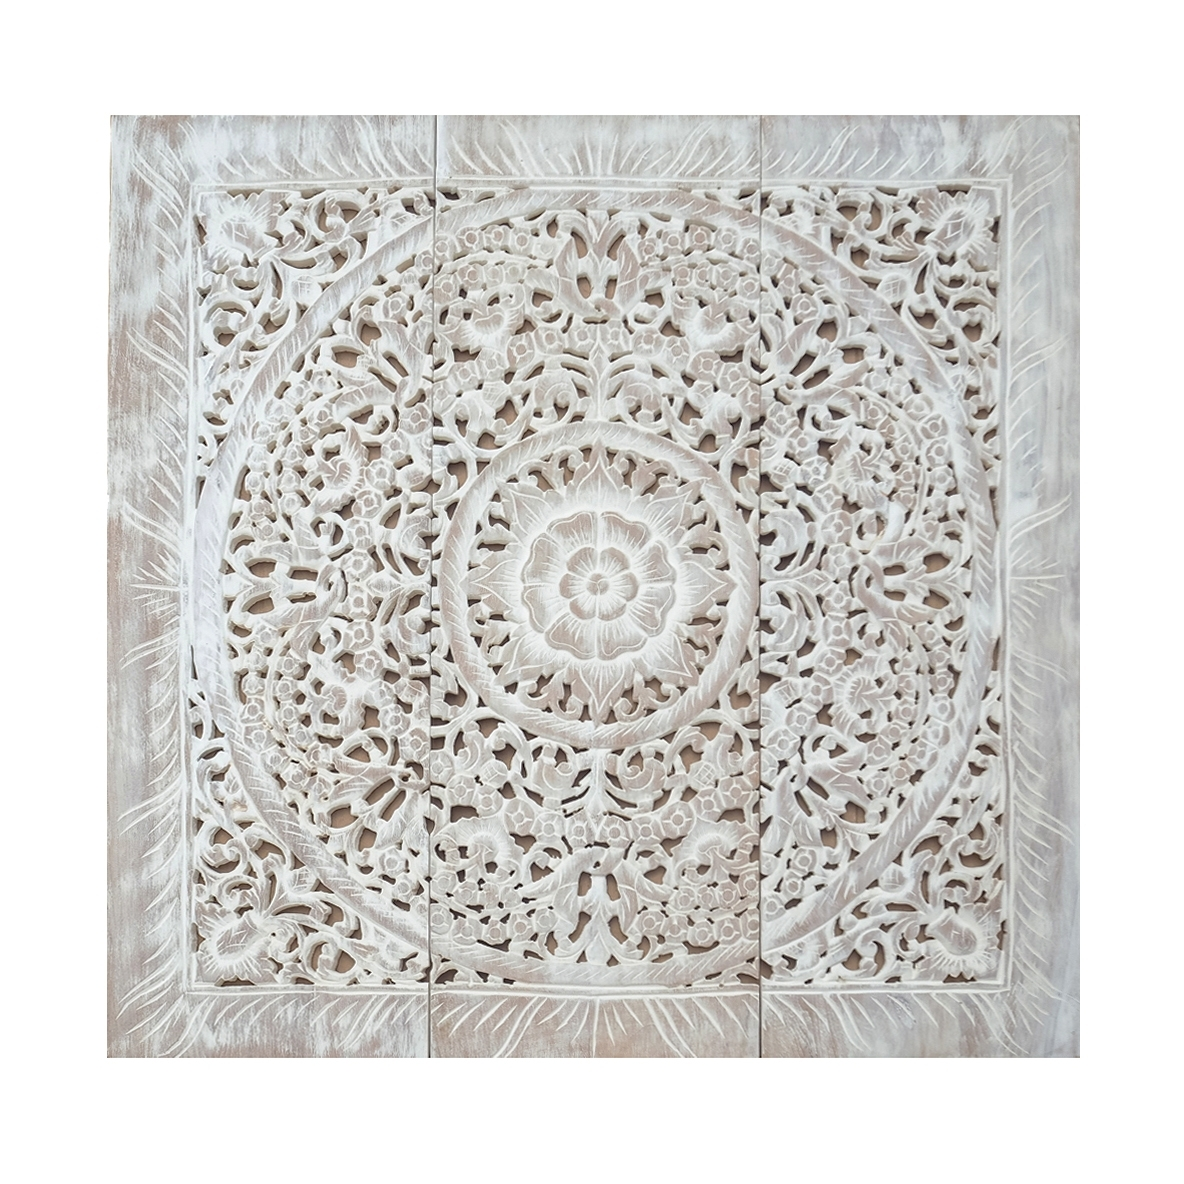 Buy Balinese Antique Wood Carving Wall Art Panel Online Throughout Most Up To Date Wall Art Panels (View 6 of 20)